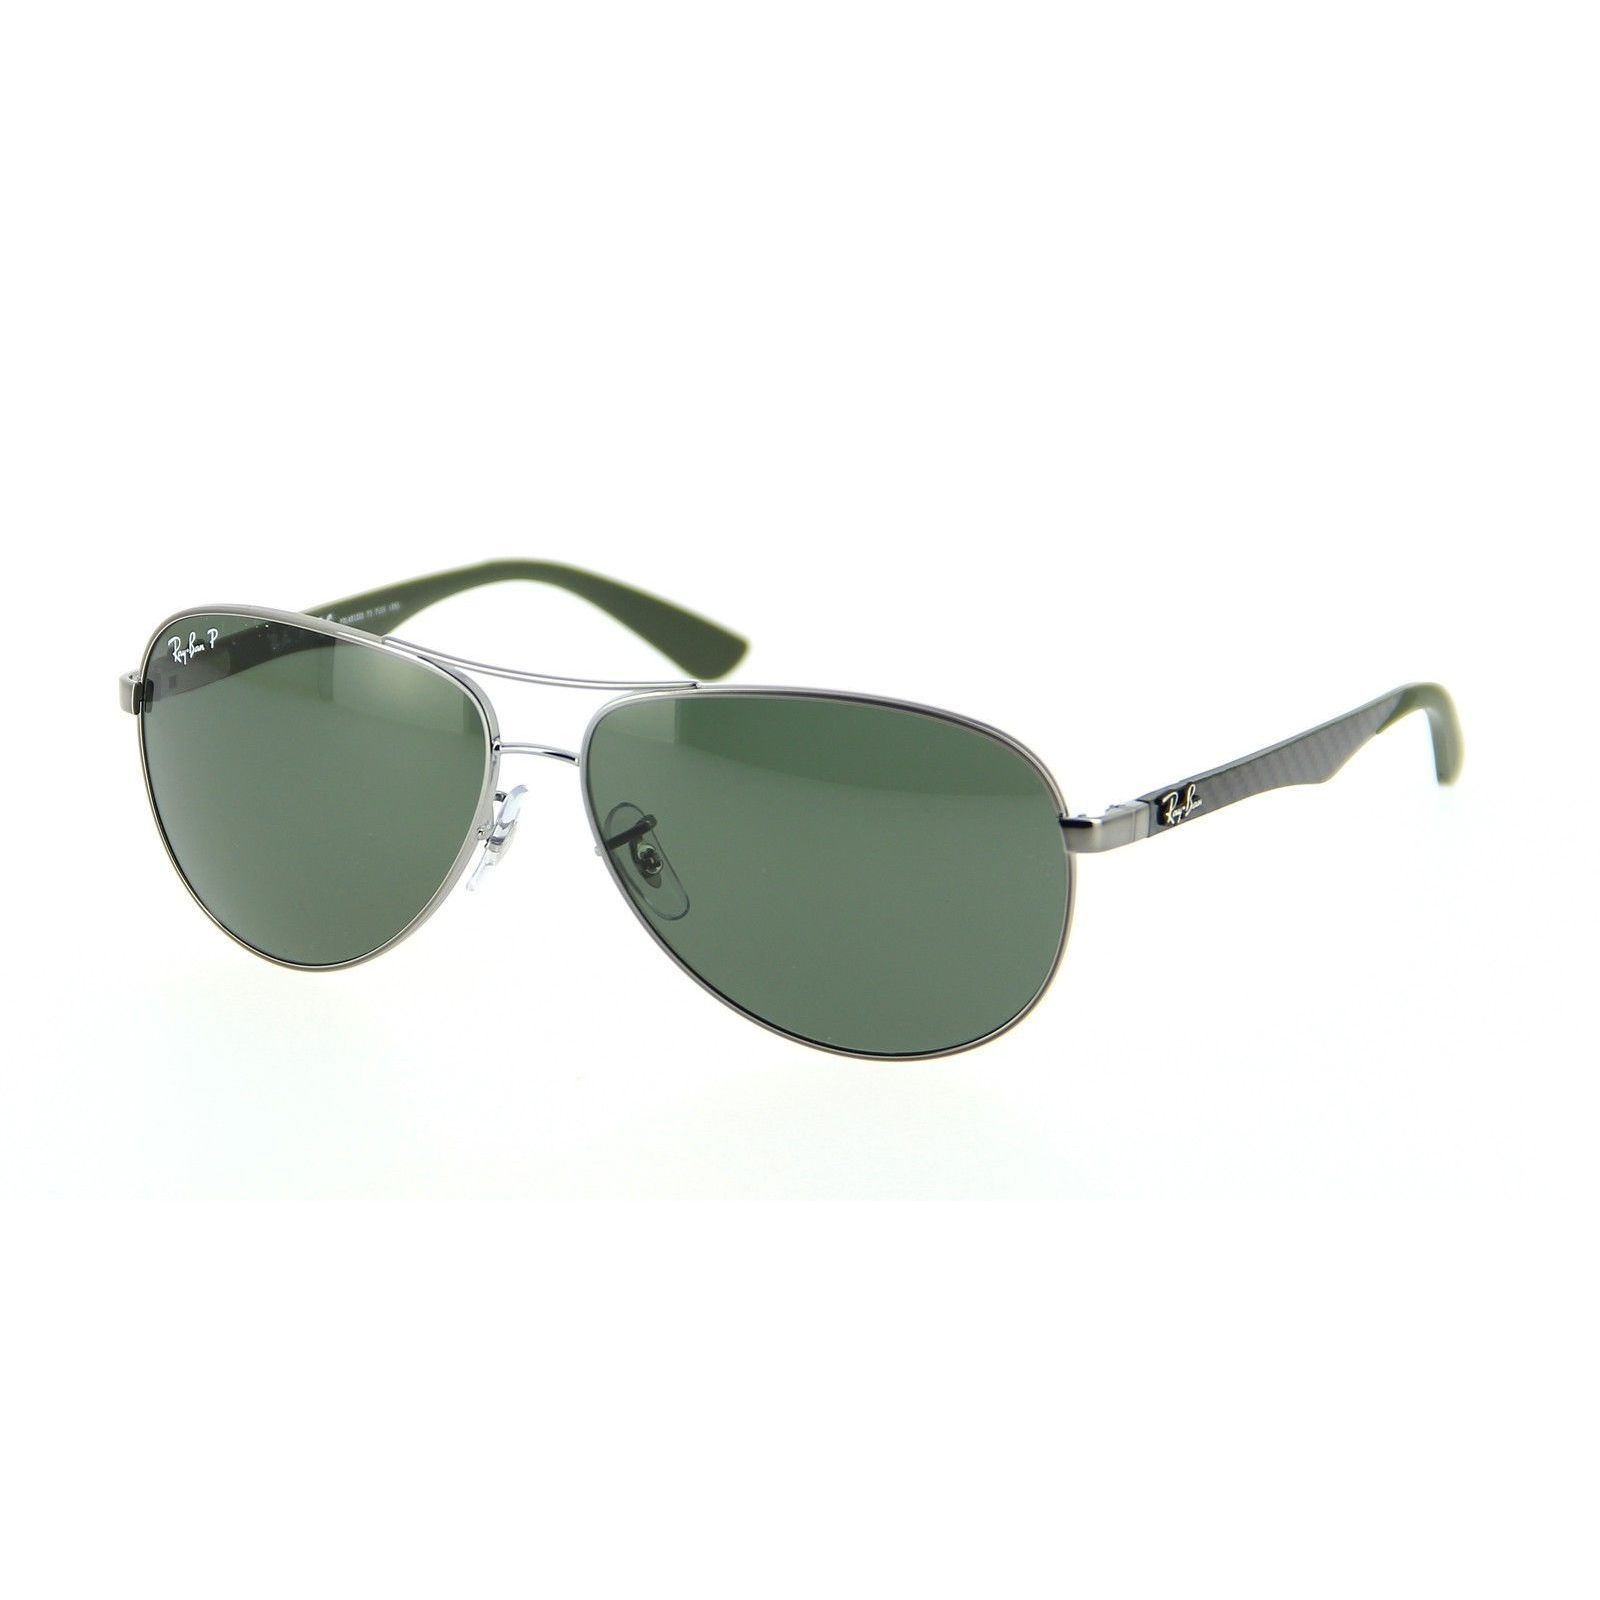 e9eba5db26629 Ray-Ban RB8313 004 N5 Gunmetal Green Frame Polarized Green 61mm Lens  Sunglasses